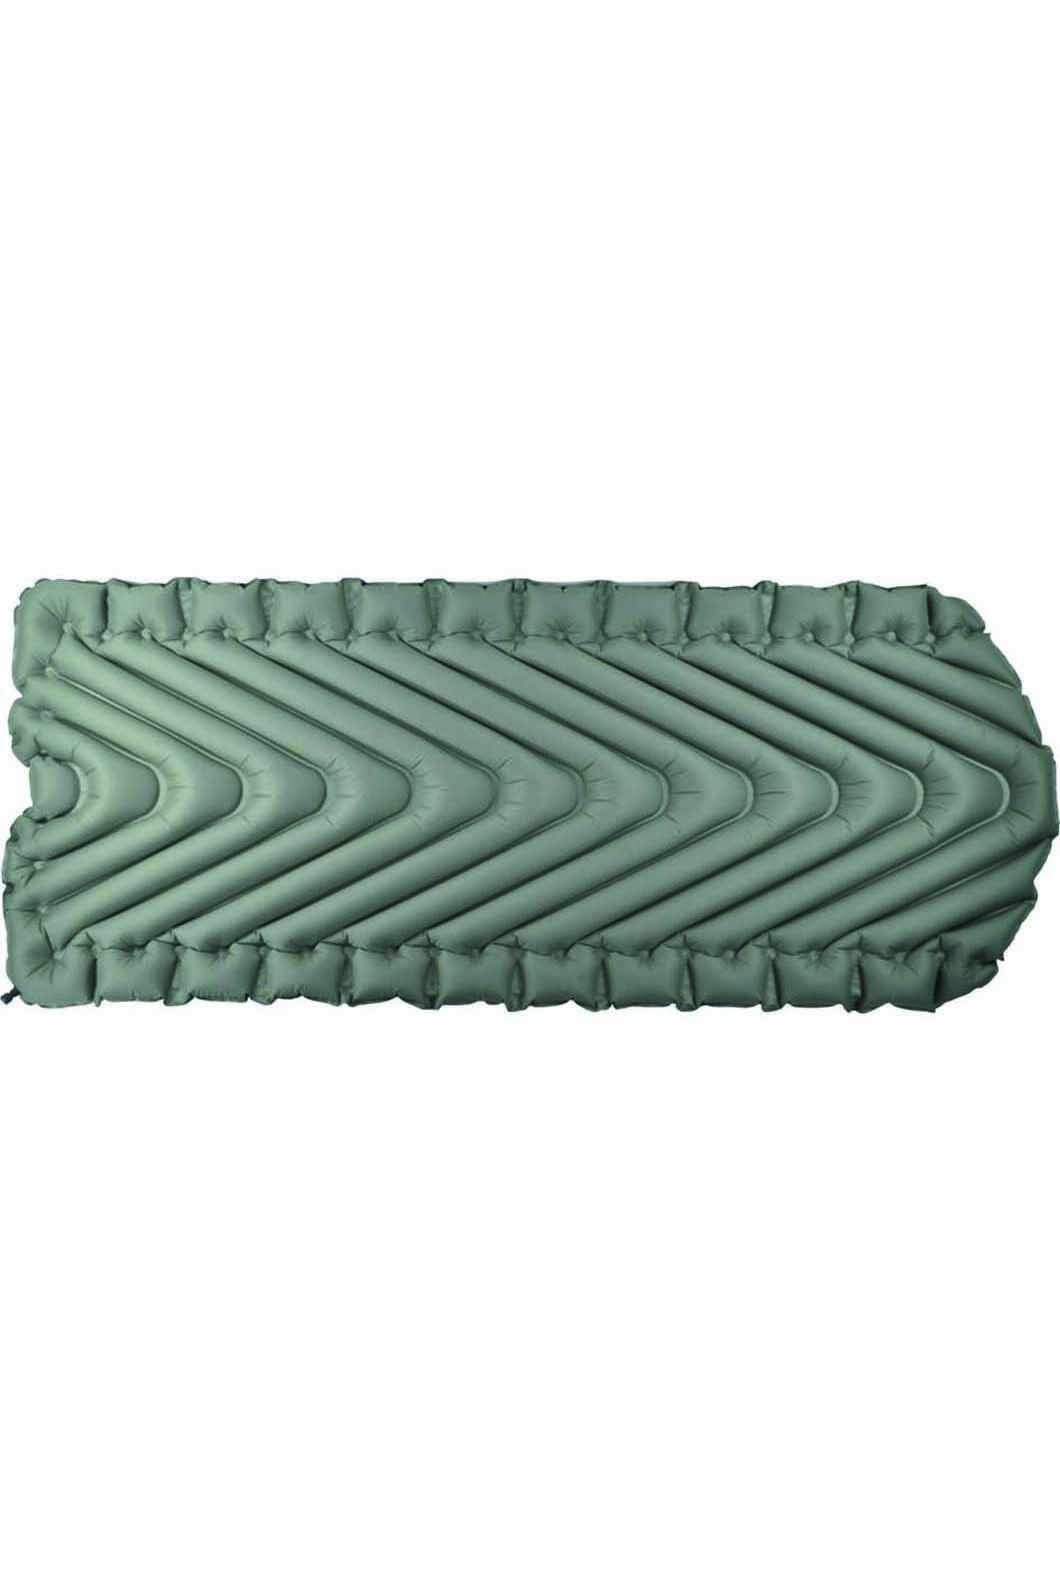 Klymit Static V Luxe Inflatable Mat, None, hi-res